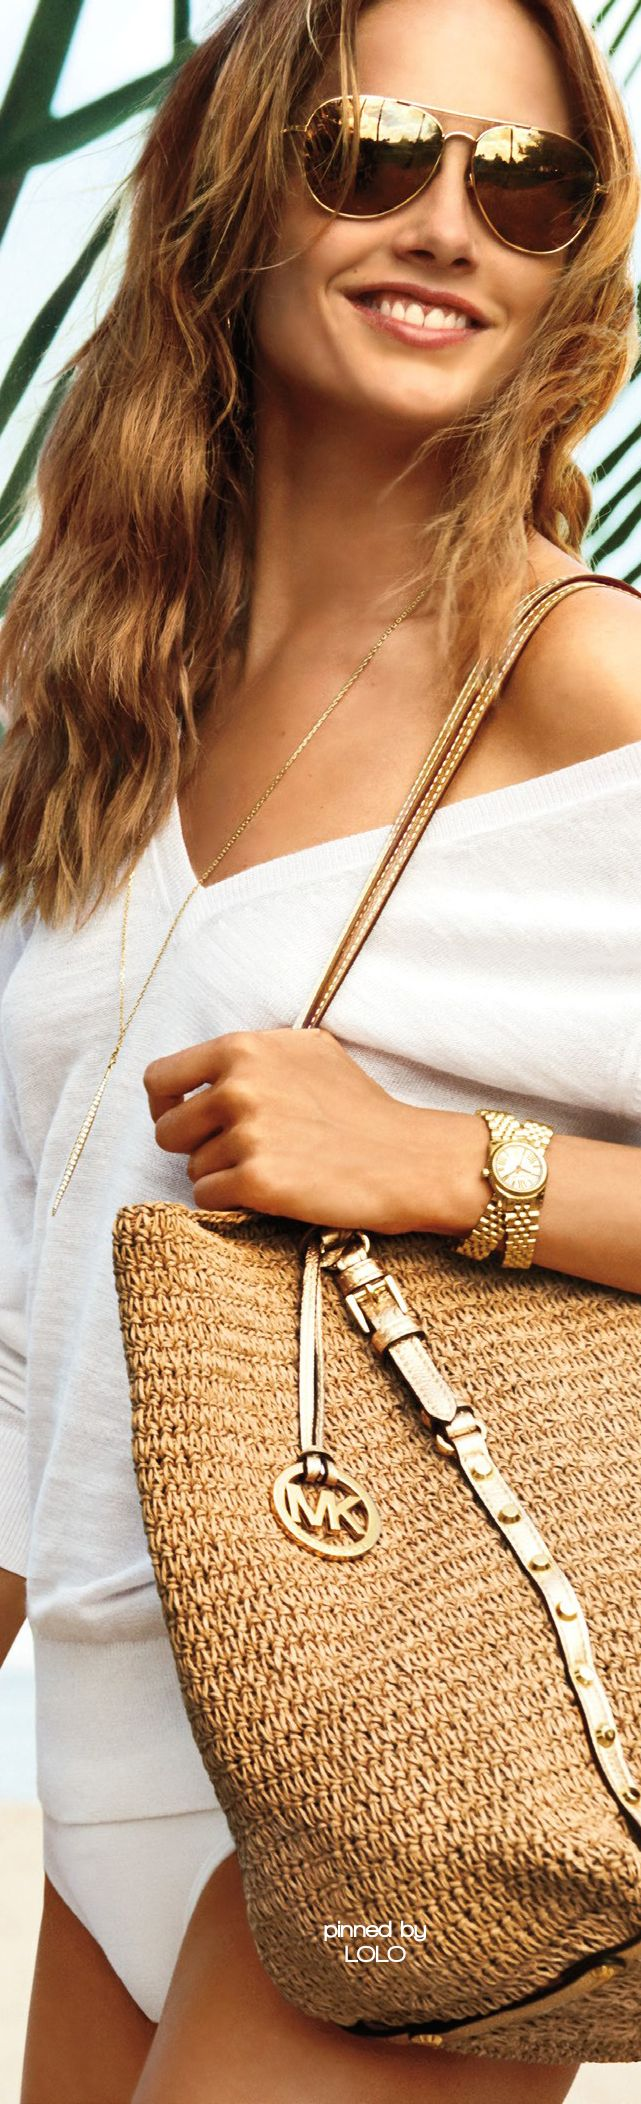 Michael Kors Summer Must Haves | LOLO